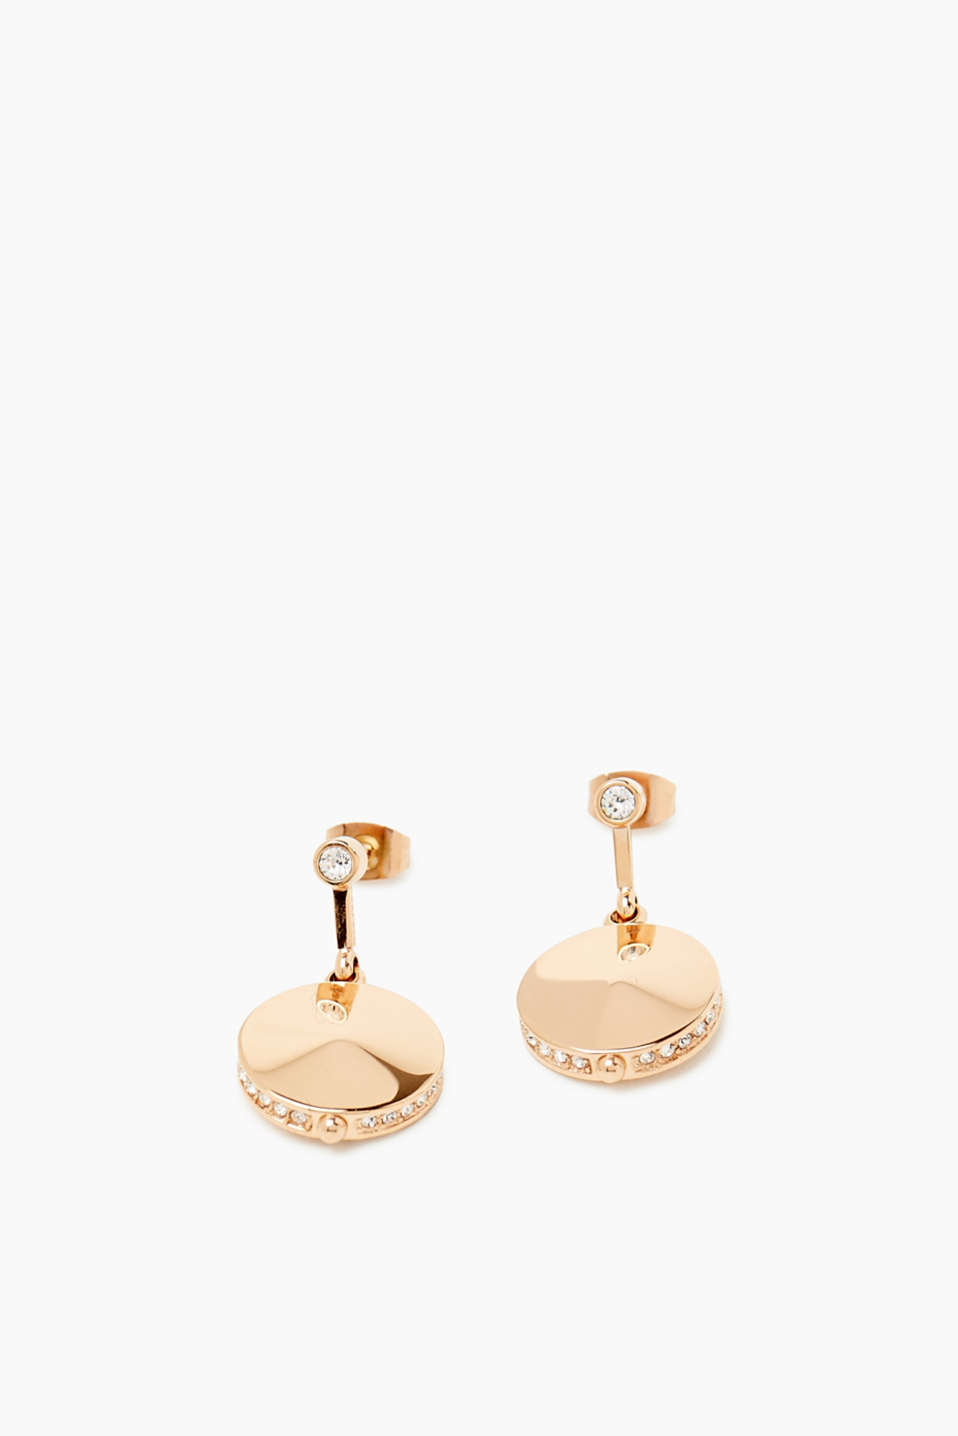 Elegant and everyday! These earrings with zirconia trimmed pendants are an elegant accessory.